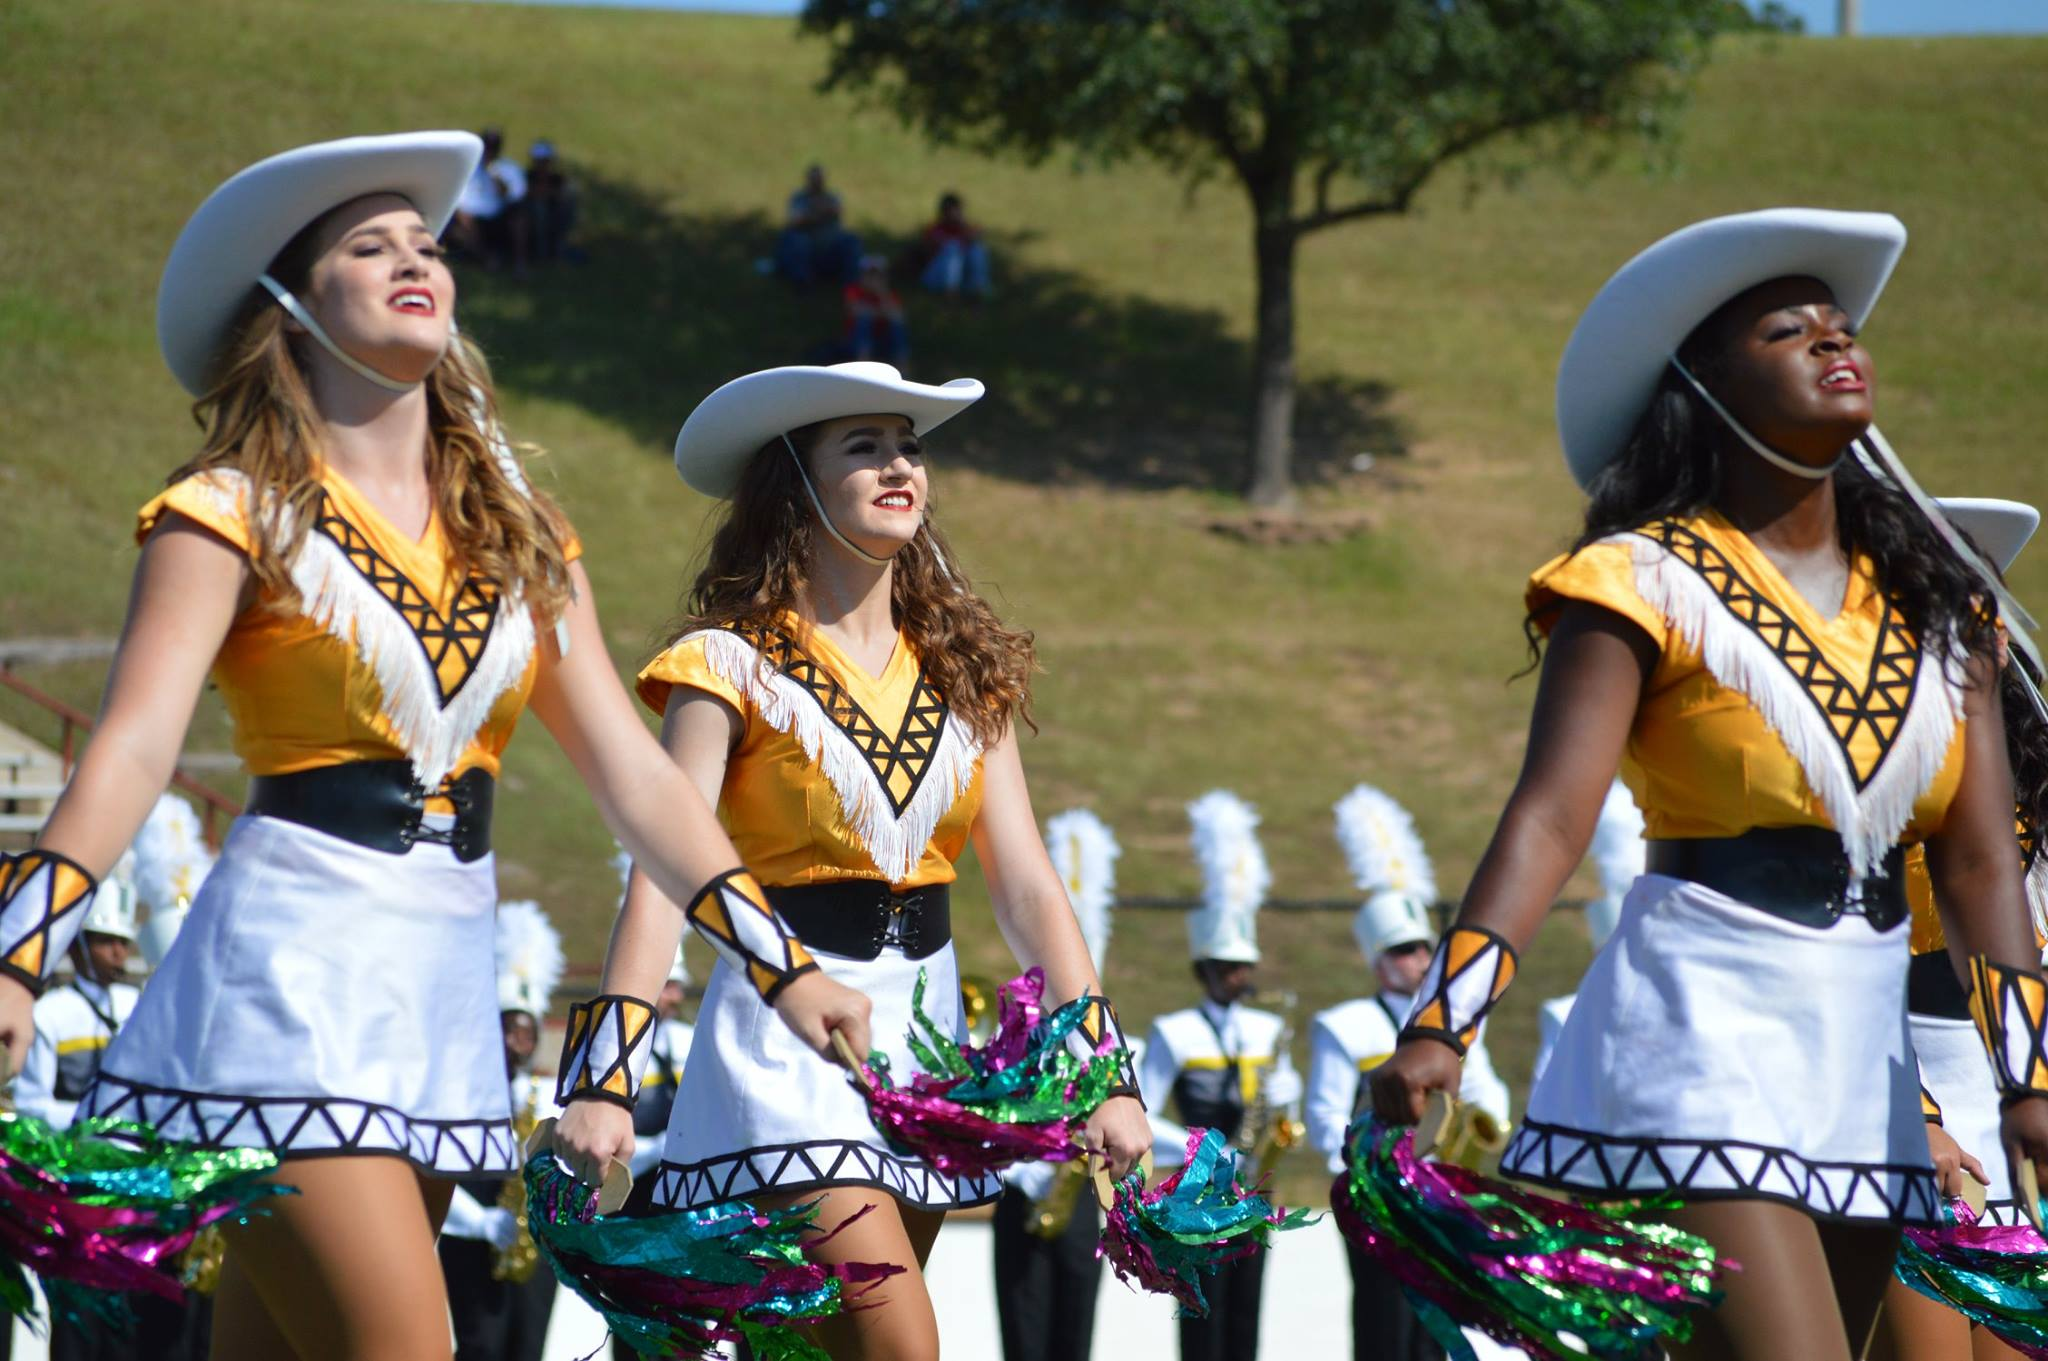 Apache Band and Apache Belles